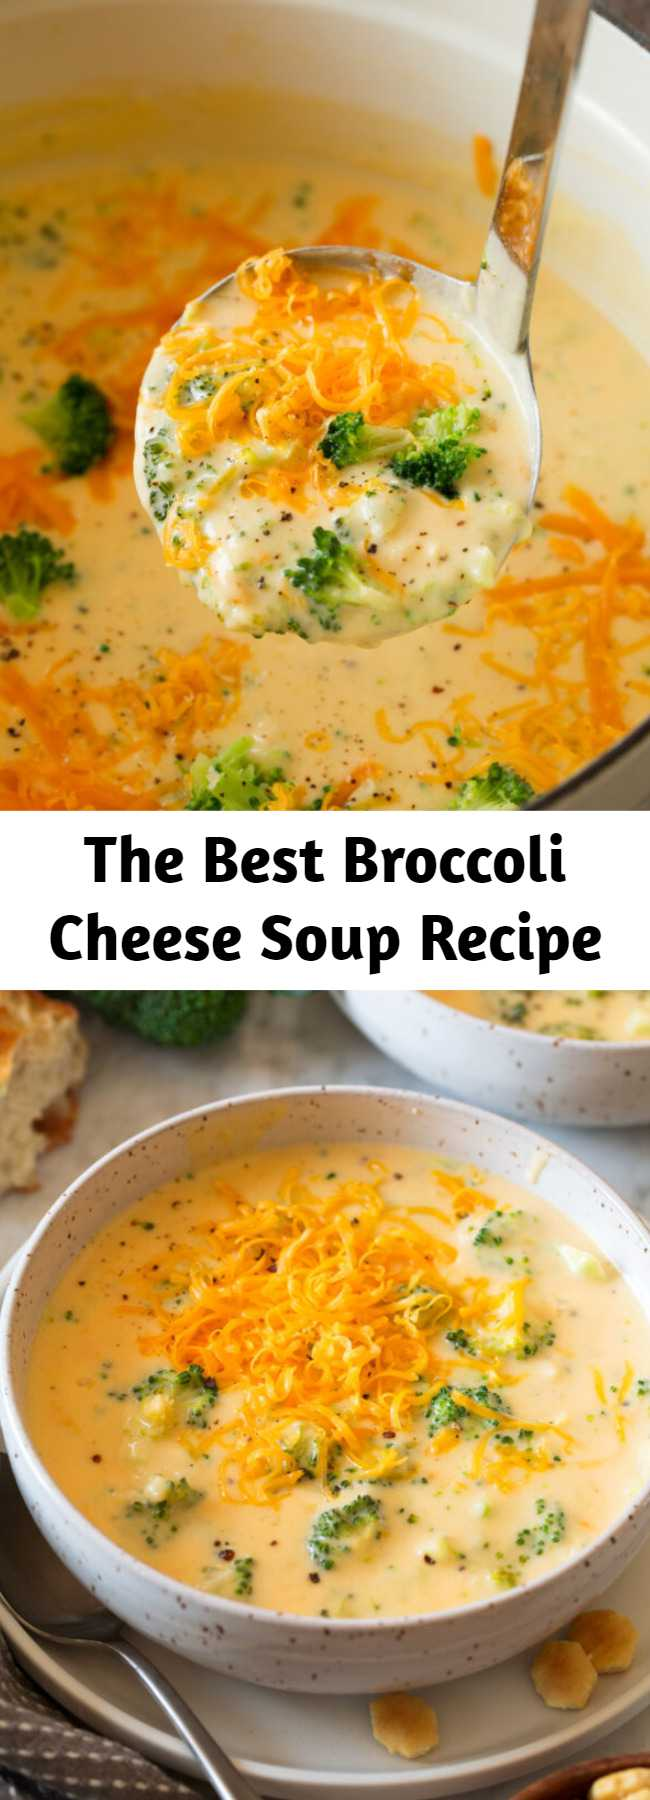 The Best Broccoli Cheese Soup Recipe - Truly the BEST Broccoli Cheese Soup! It's perfectly cheesy, hearty, rich, creamy, and it's super easy to make! Pair it with fresh bread for a delicious cozy dinner. Makes about 8 cups.